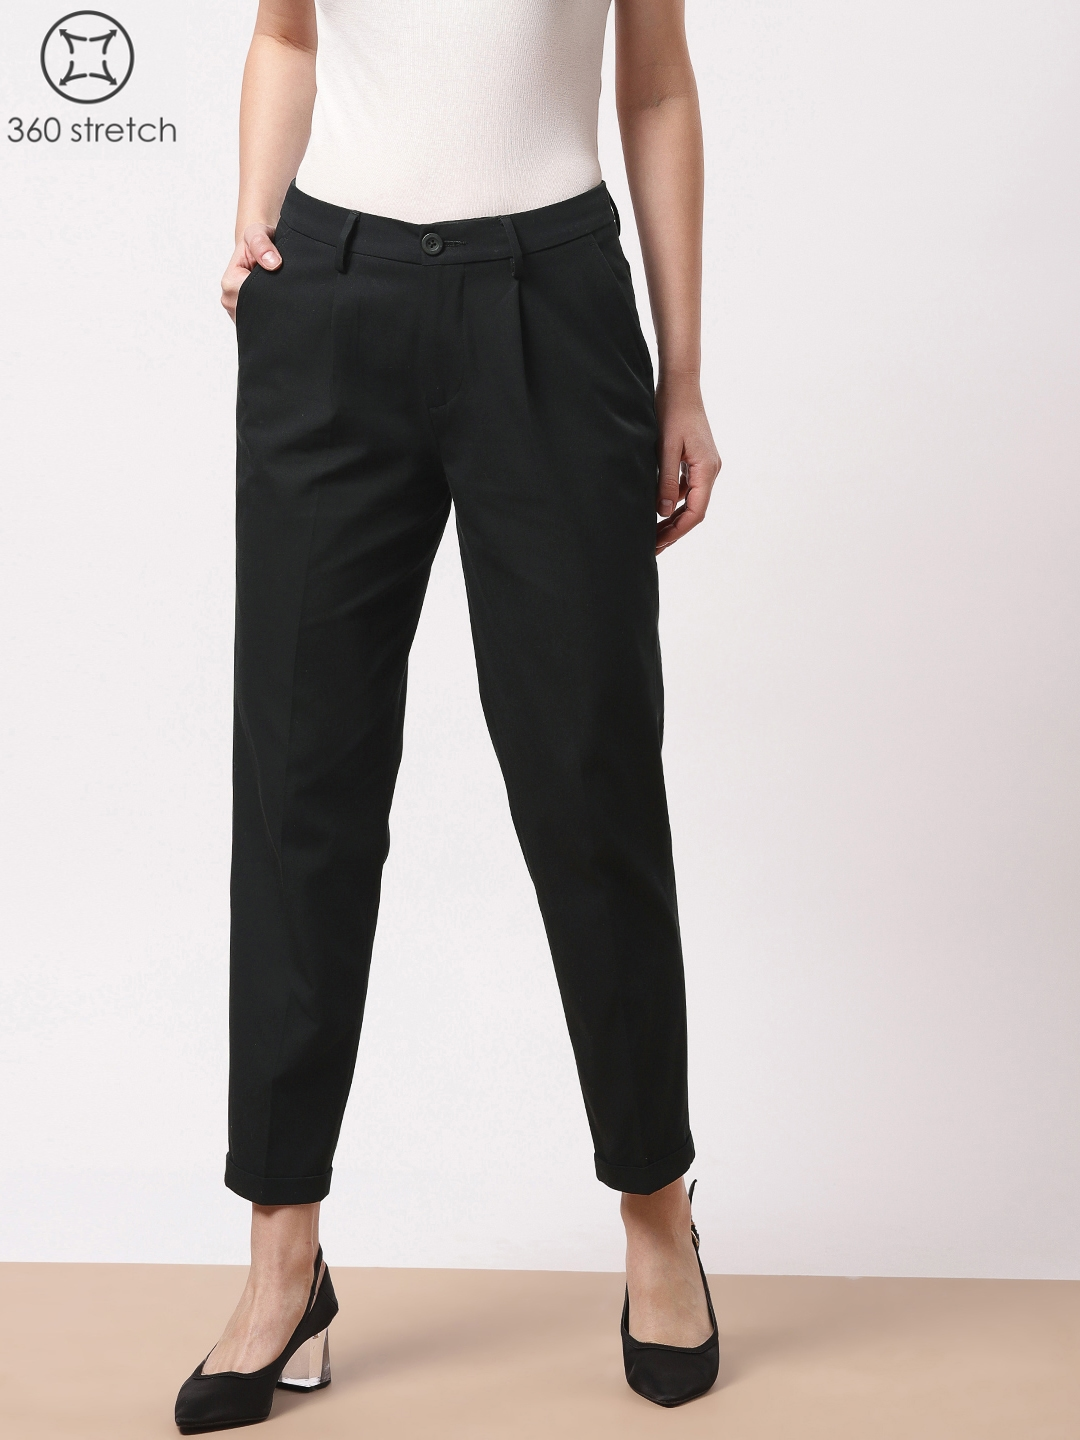 809920de0637 ether Women Black Regular Fit Solid four Way Stretch Smart Casual Trousers